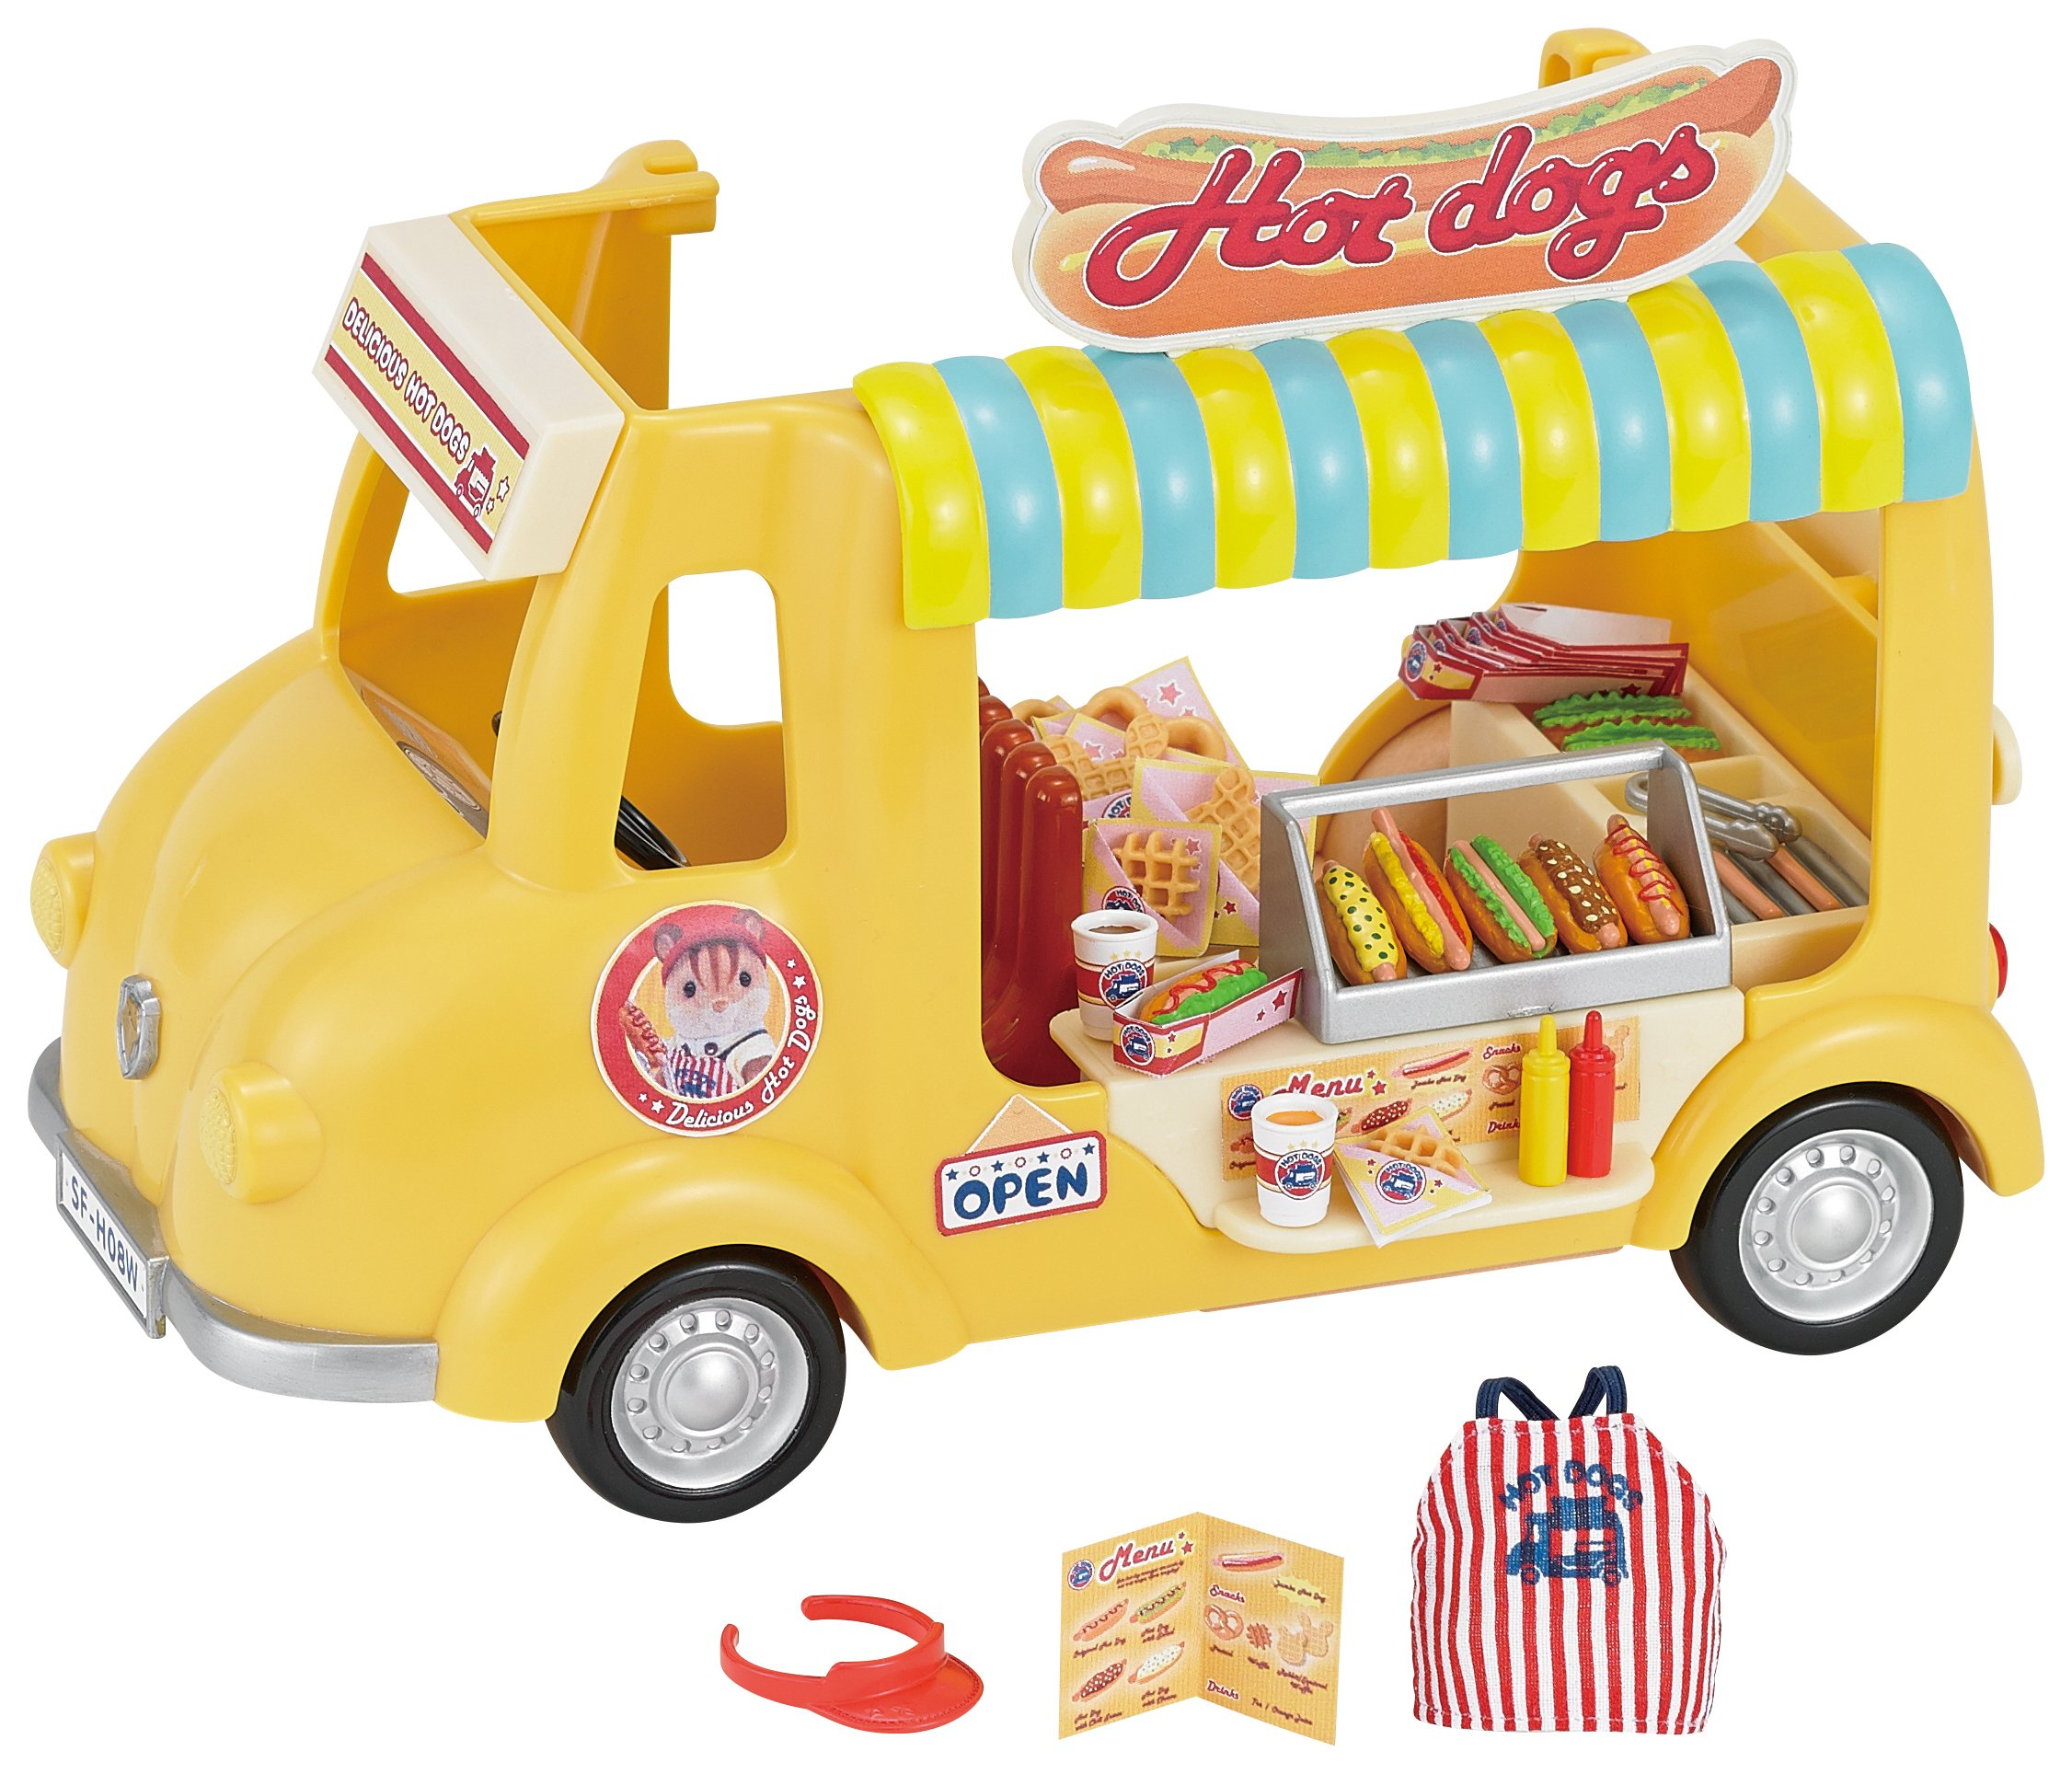 Image of Sylvanian Families - Hot Dog Van